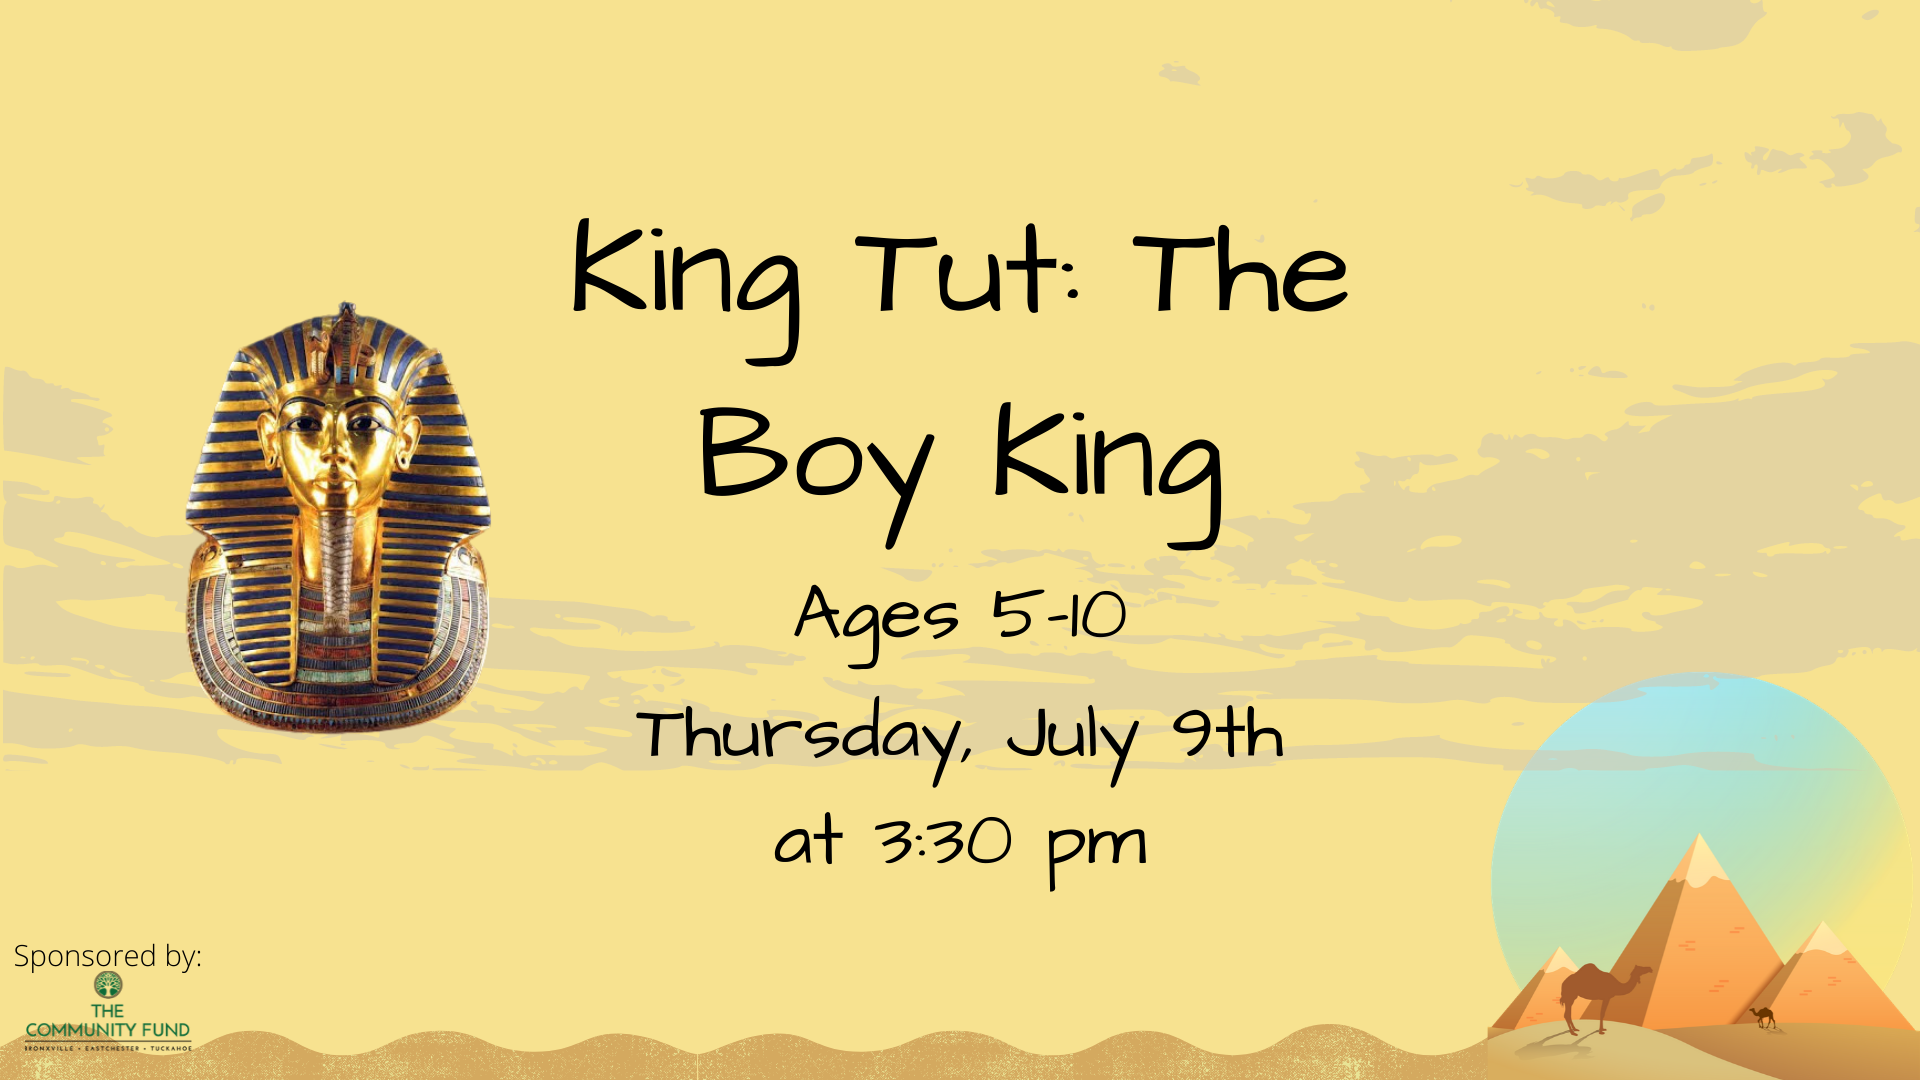 King Tut: The Boy King, Ages 5-10